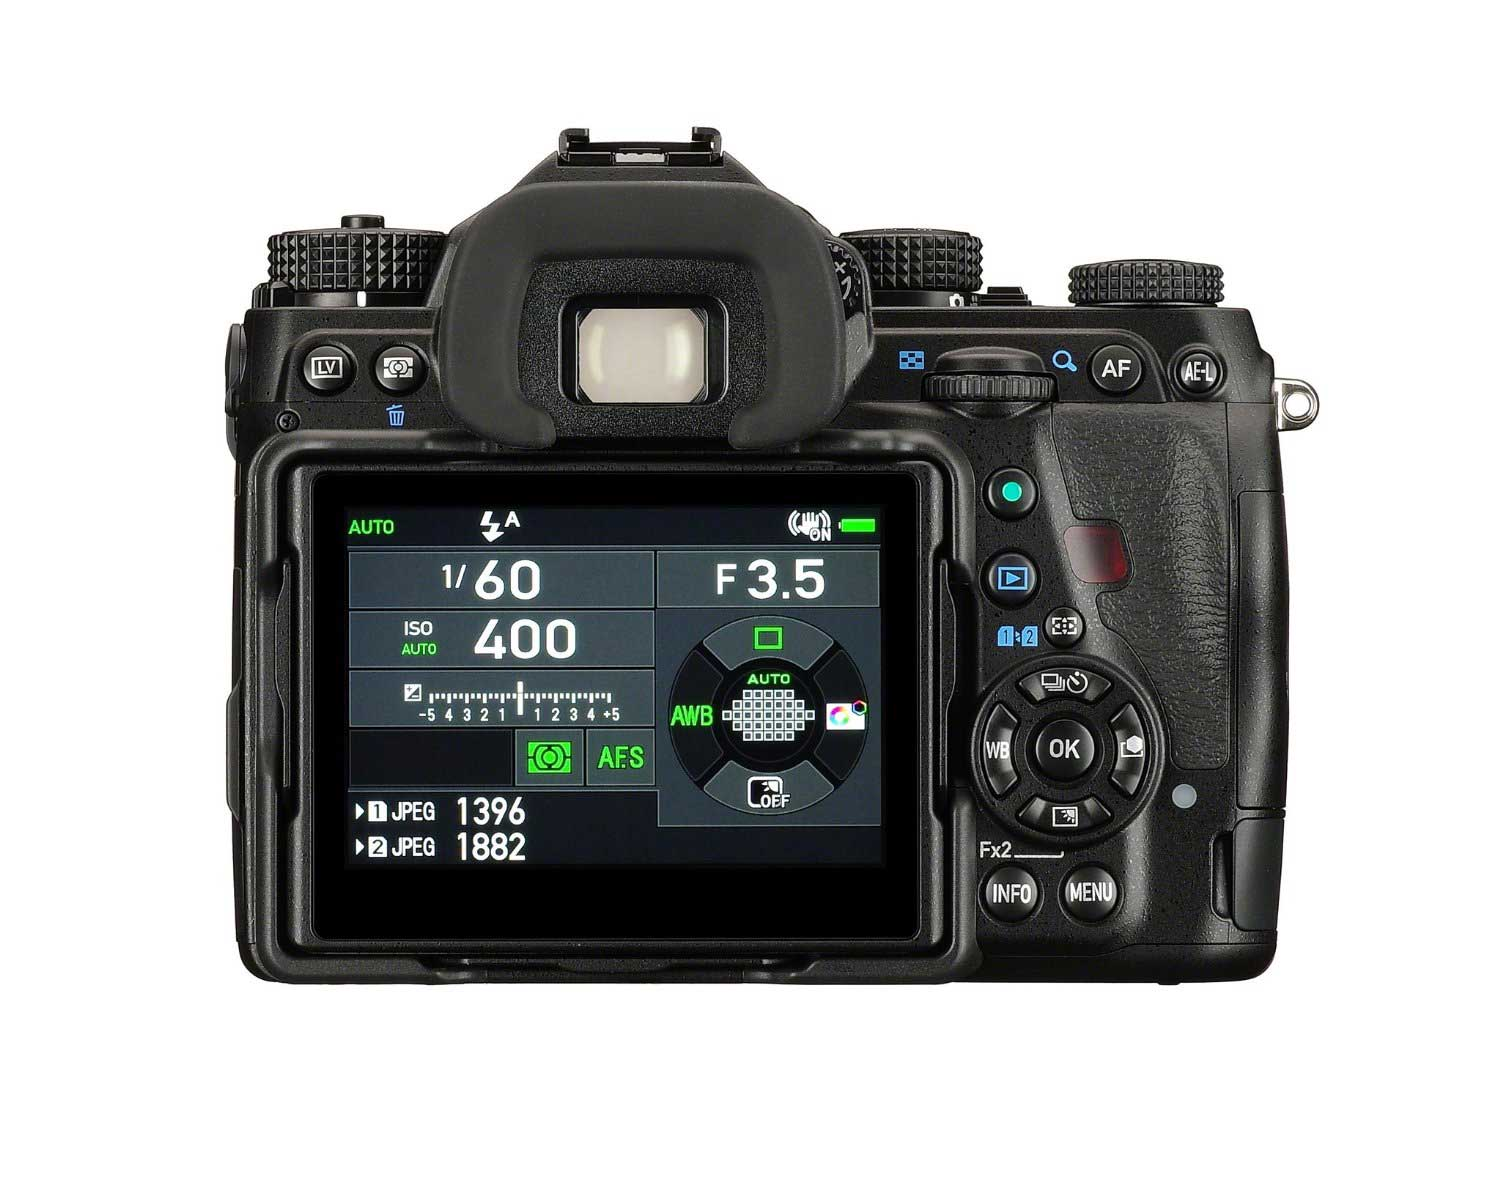 Camera Full Frame Sensor Dslr Cameras pentax k 1 full frame dslr camera with 36 4mp sensor and 5 axis sensor